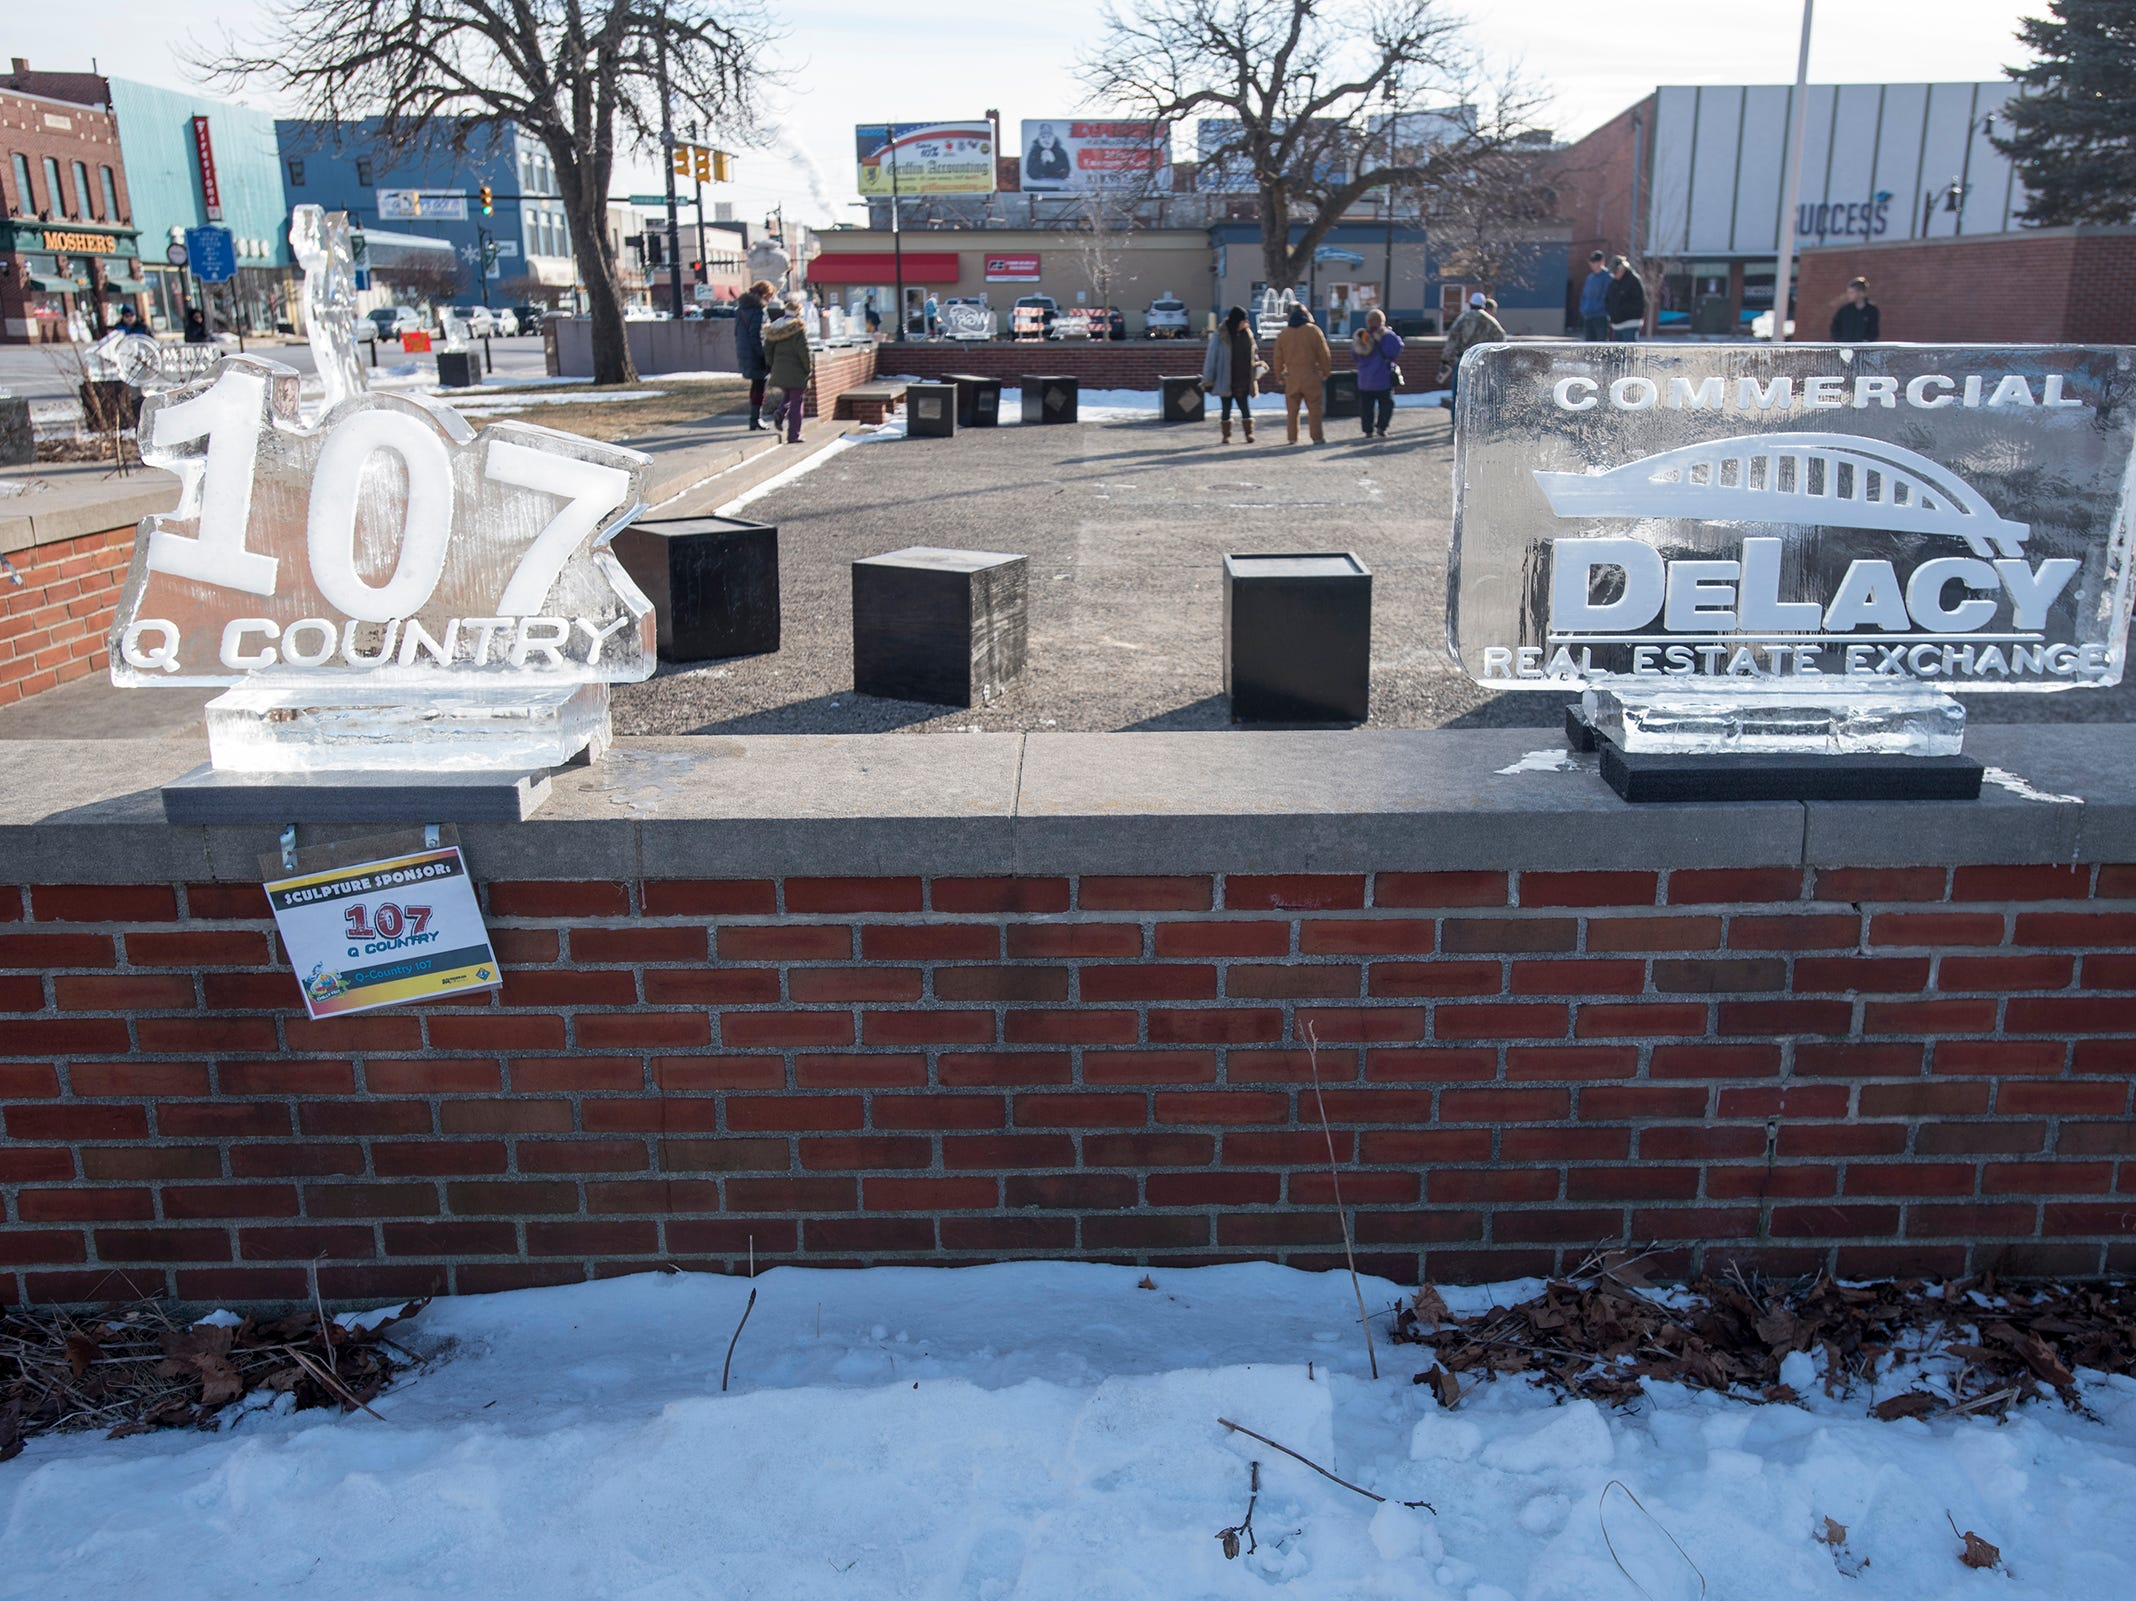 Ice sculptures line Huron Avenue in downtown Port Huron Saturday, Jan. 26, 2019 during Chilly Fest.